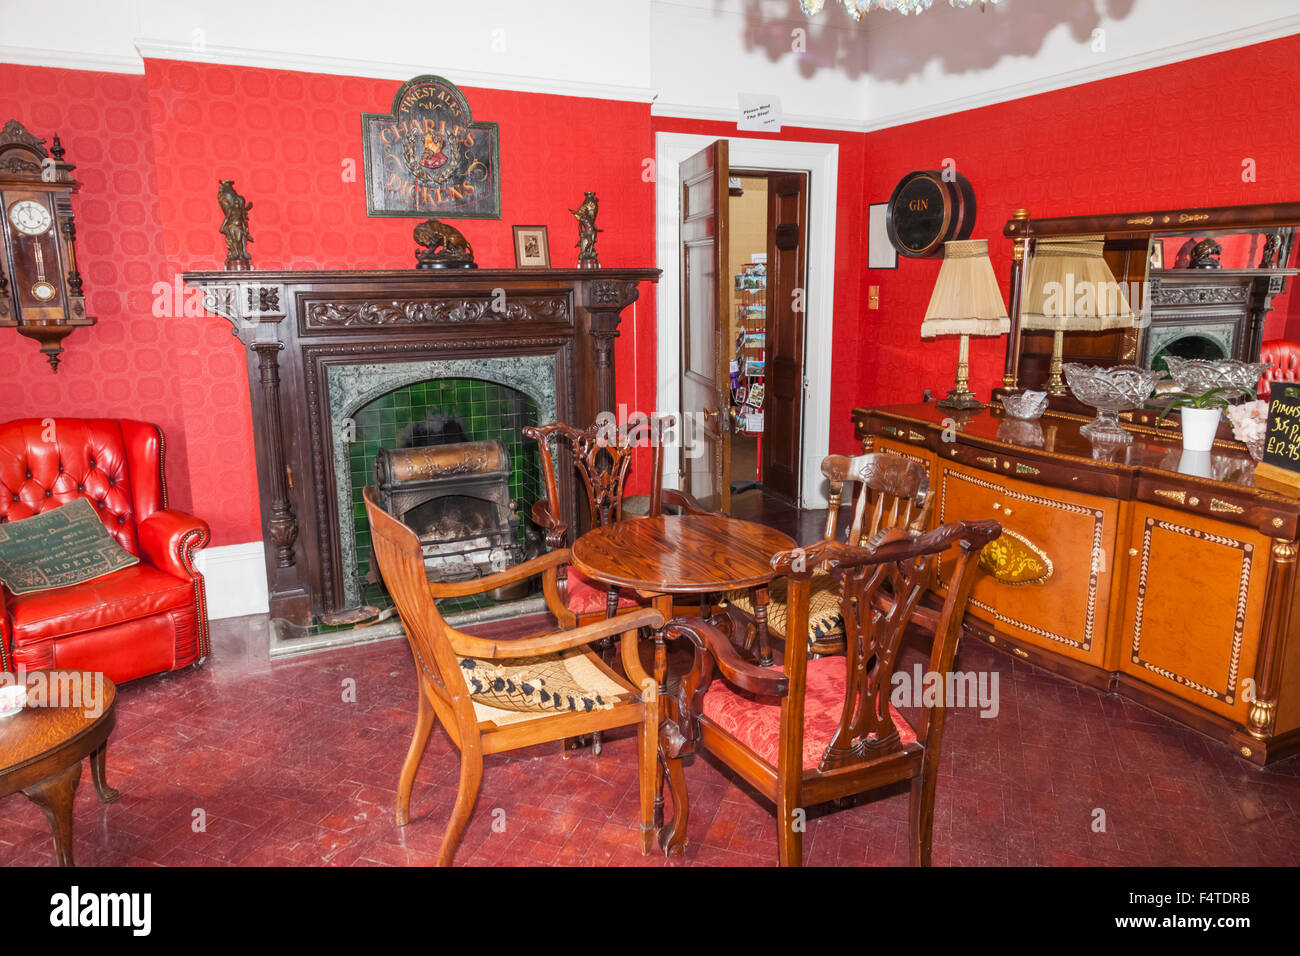 England, Kent, Broadstairs, Bleak House, The Lounge - Stock Image